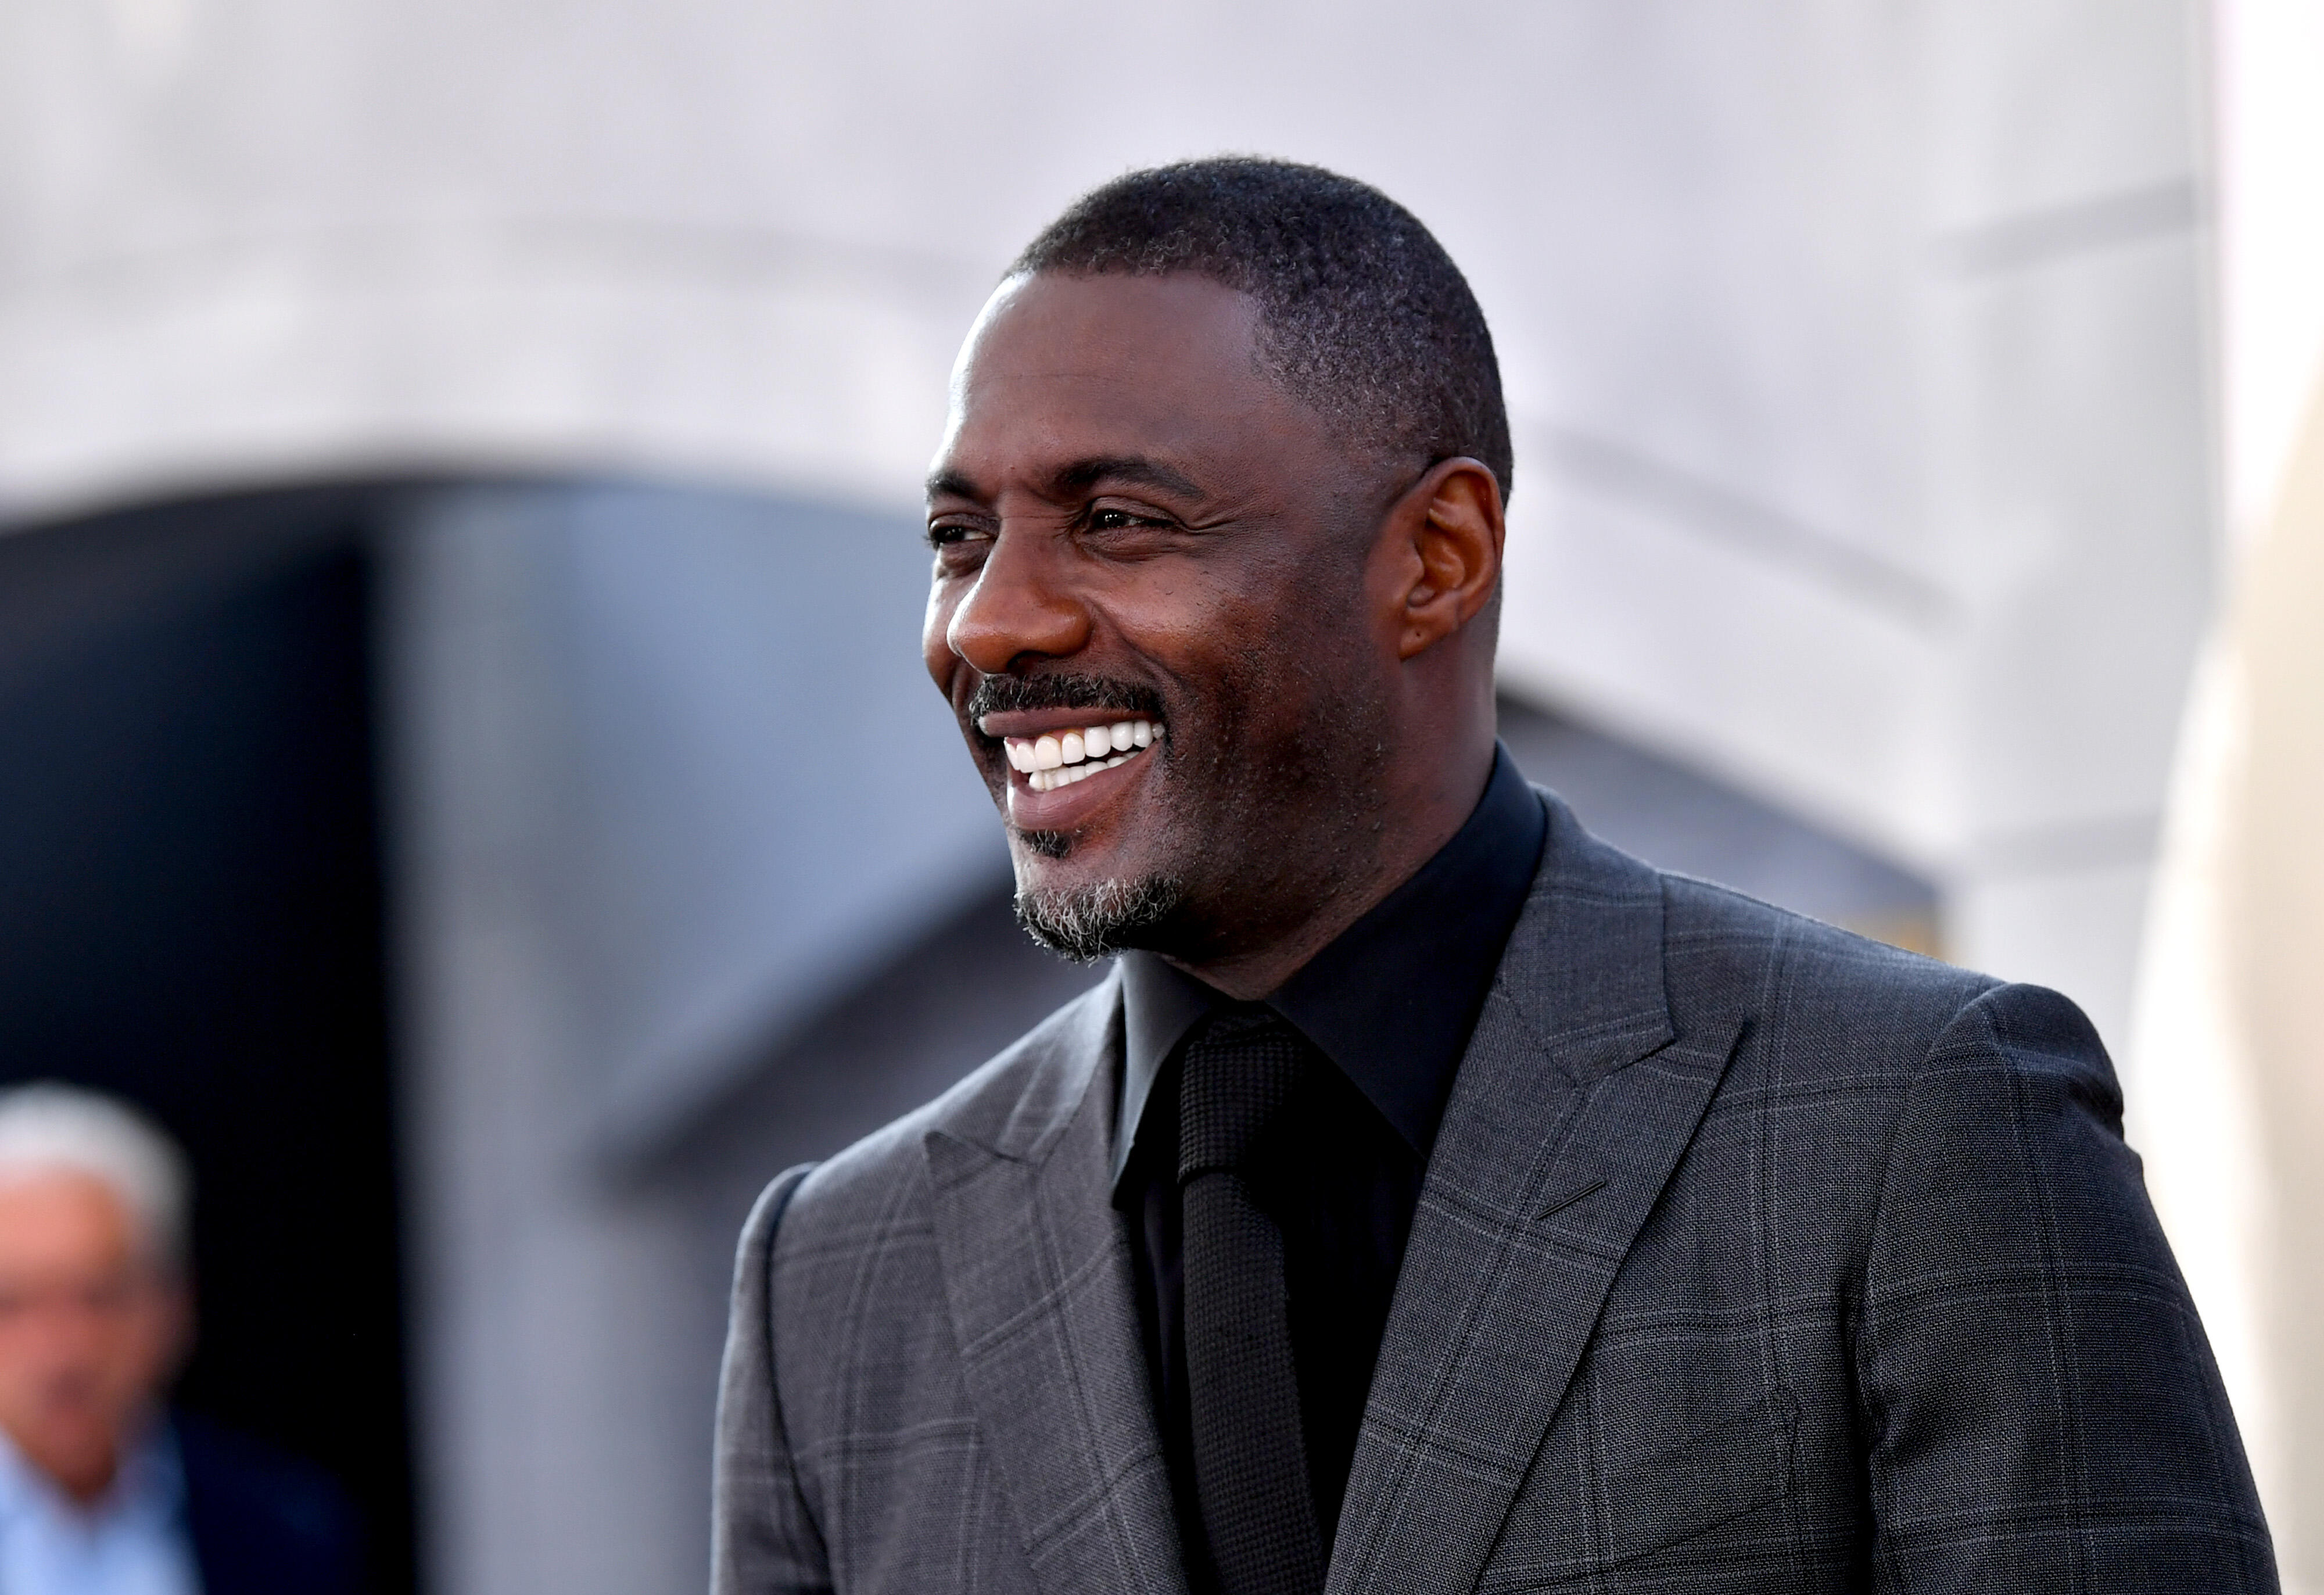 Idris Elba Drops A Track About His Experience with Coronavirus